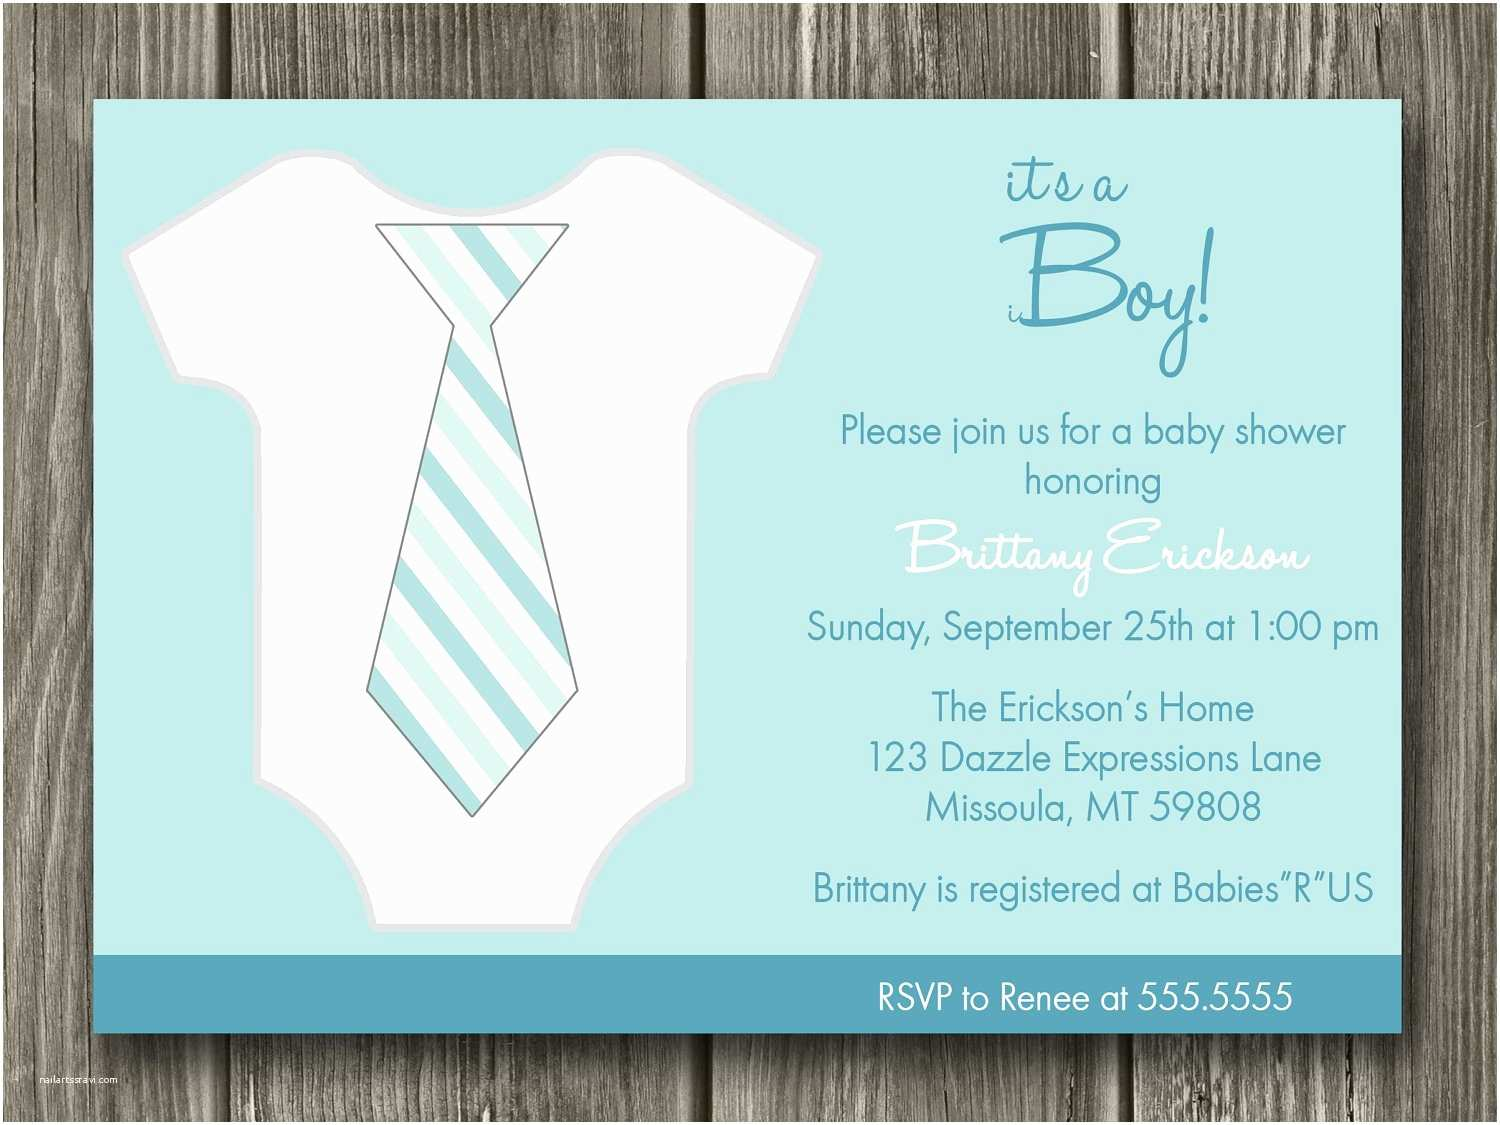 Invitations for Baby Shower Baby Shower Invitation Baby Shower Invitation Templates